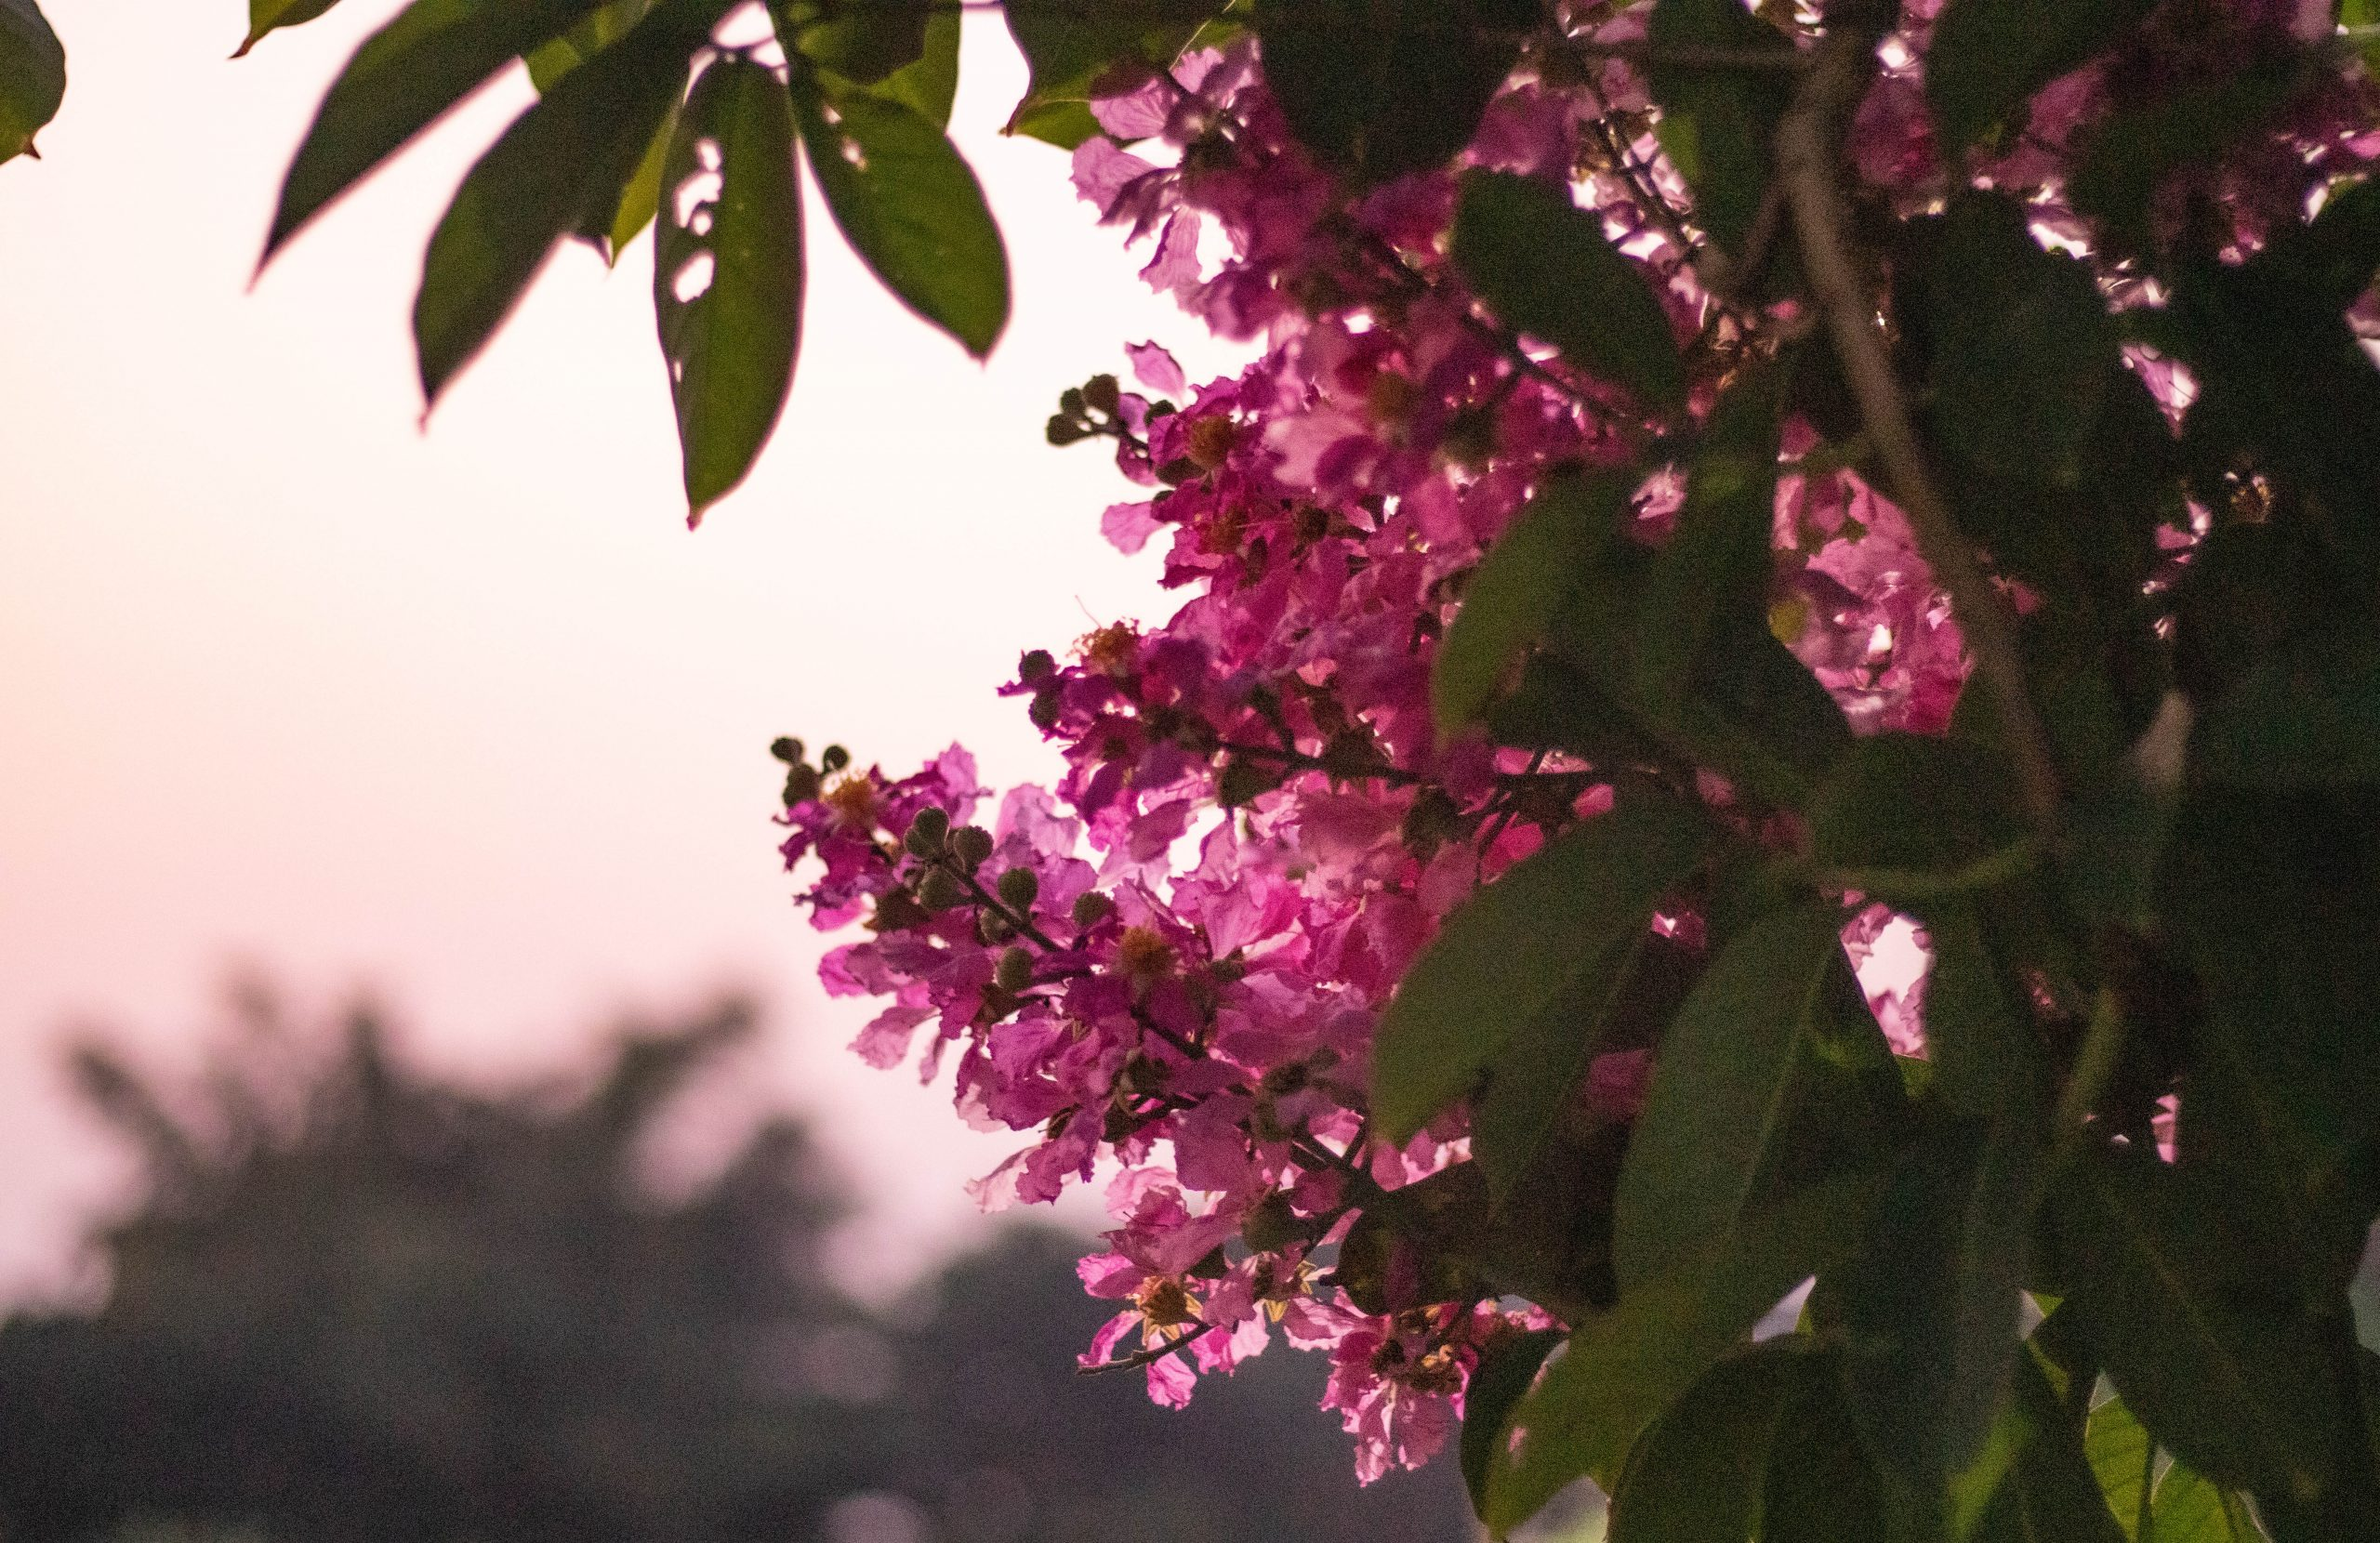 Eastern Redbud in the evening glory